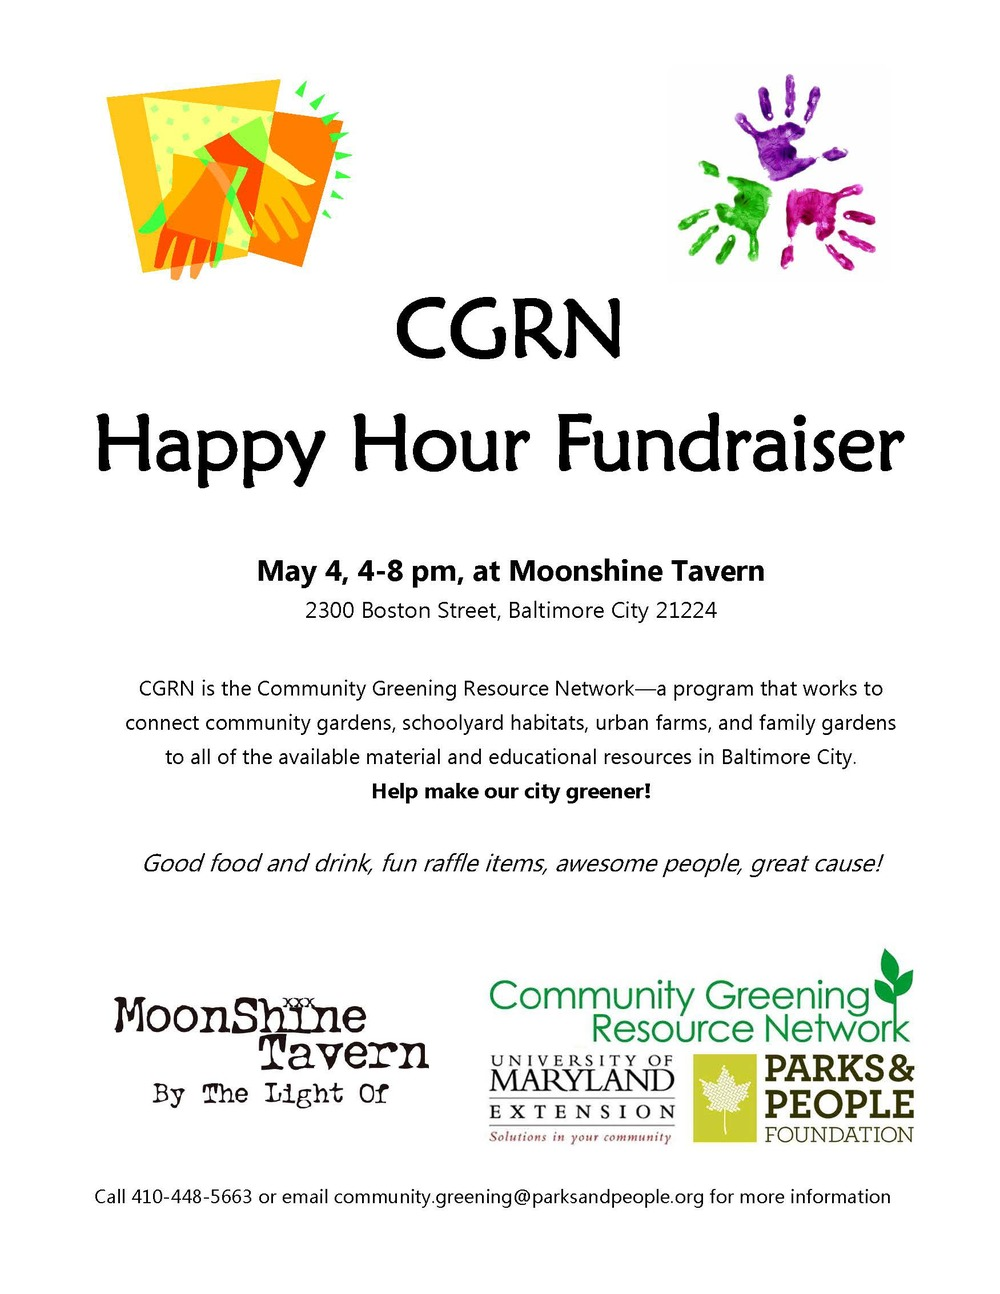 May Happy Hour Fundraiser Moonshine Tavern NON MEMBER flyer